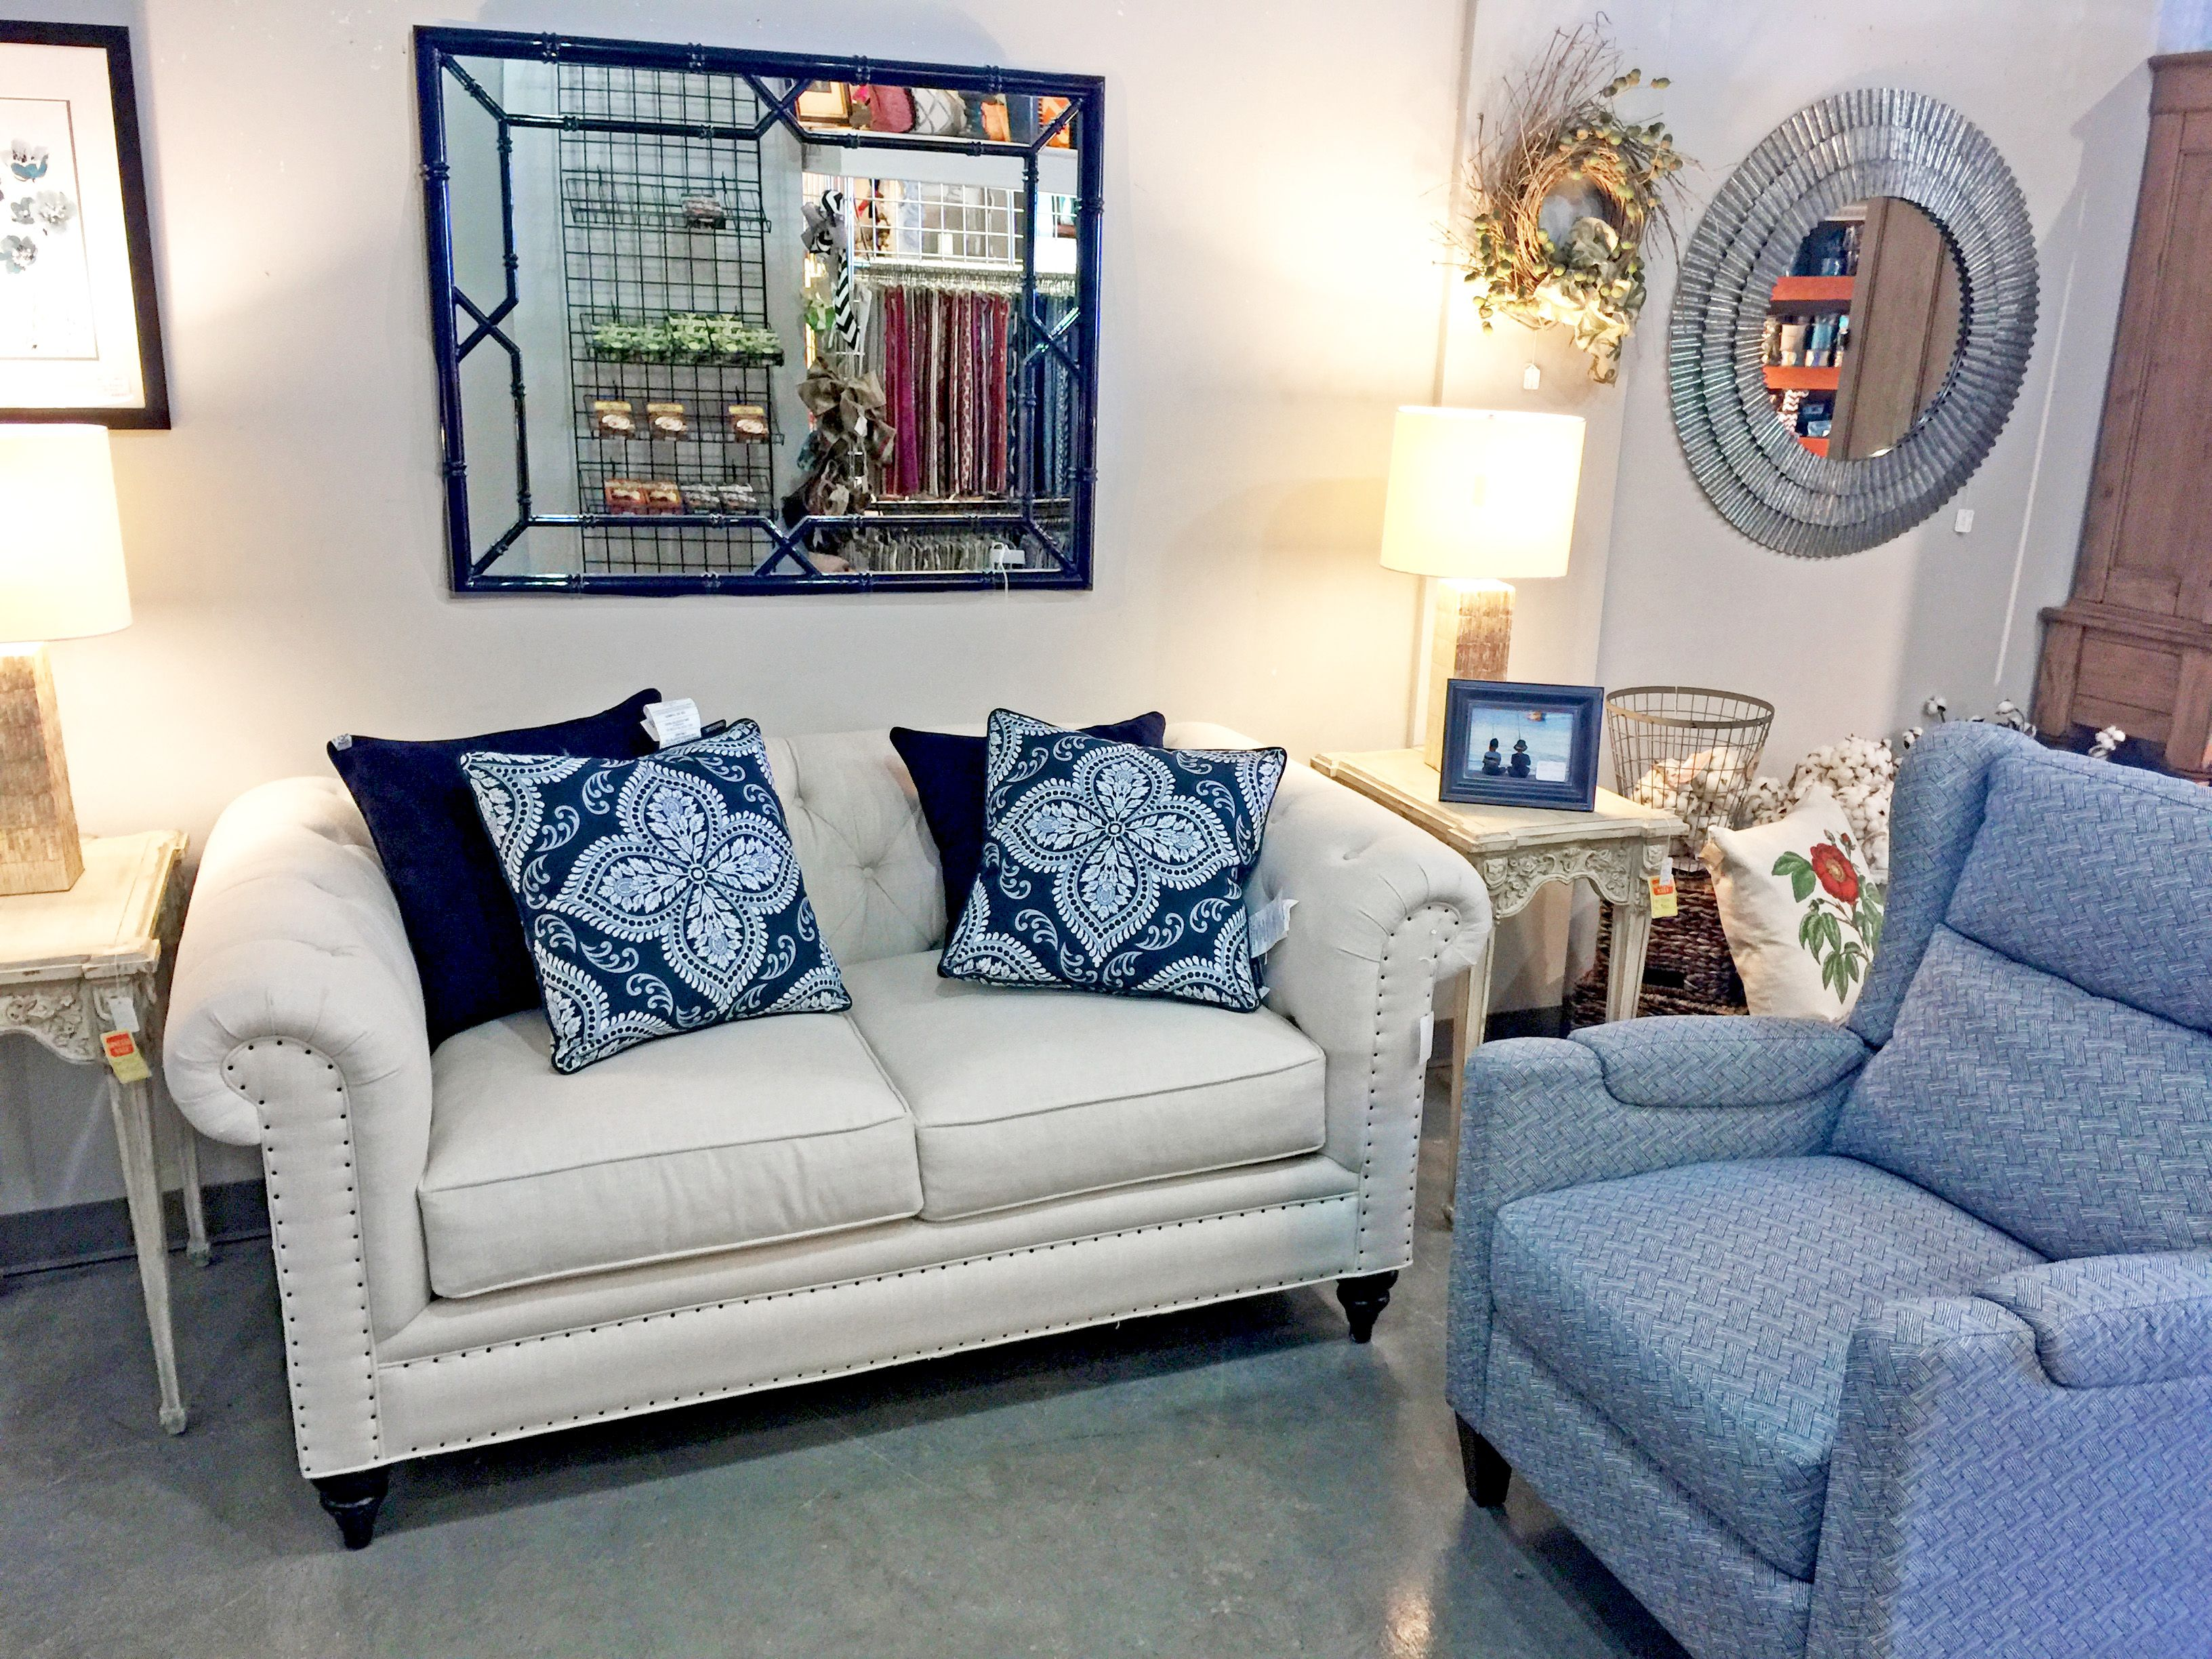 Inspire Blog Raleigh Inspirations Home Decor And More Home Decor Home Selling Furniture